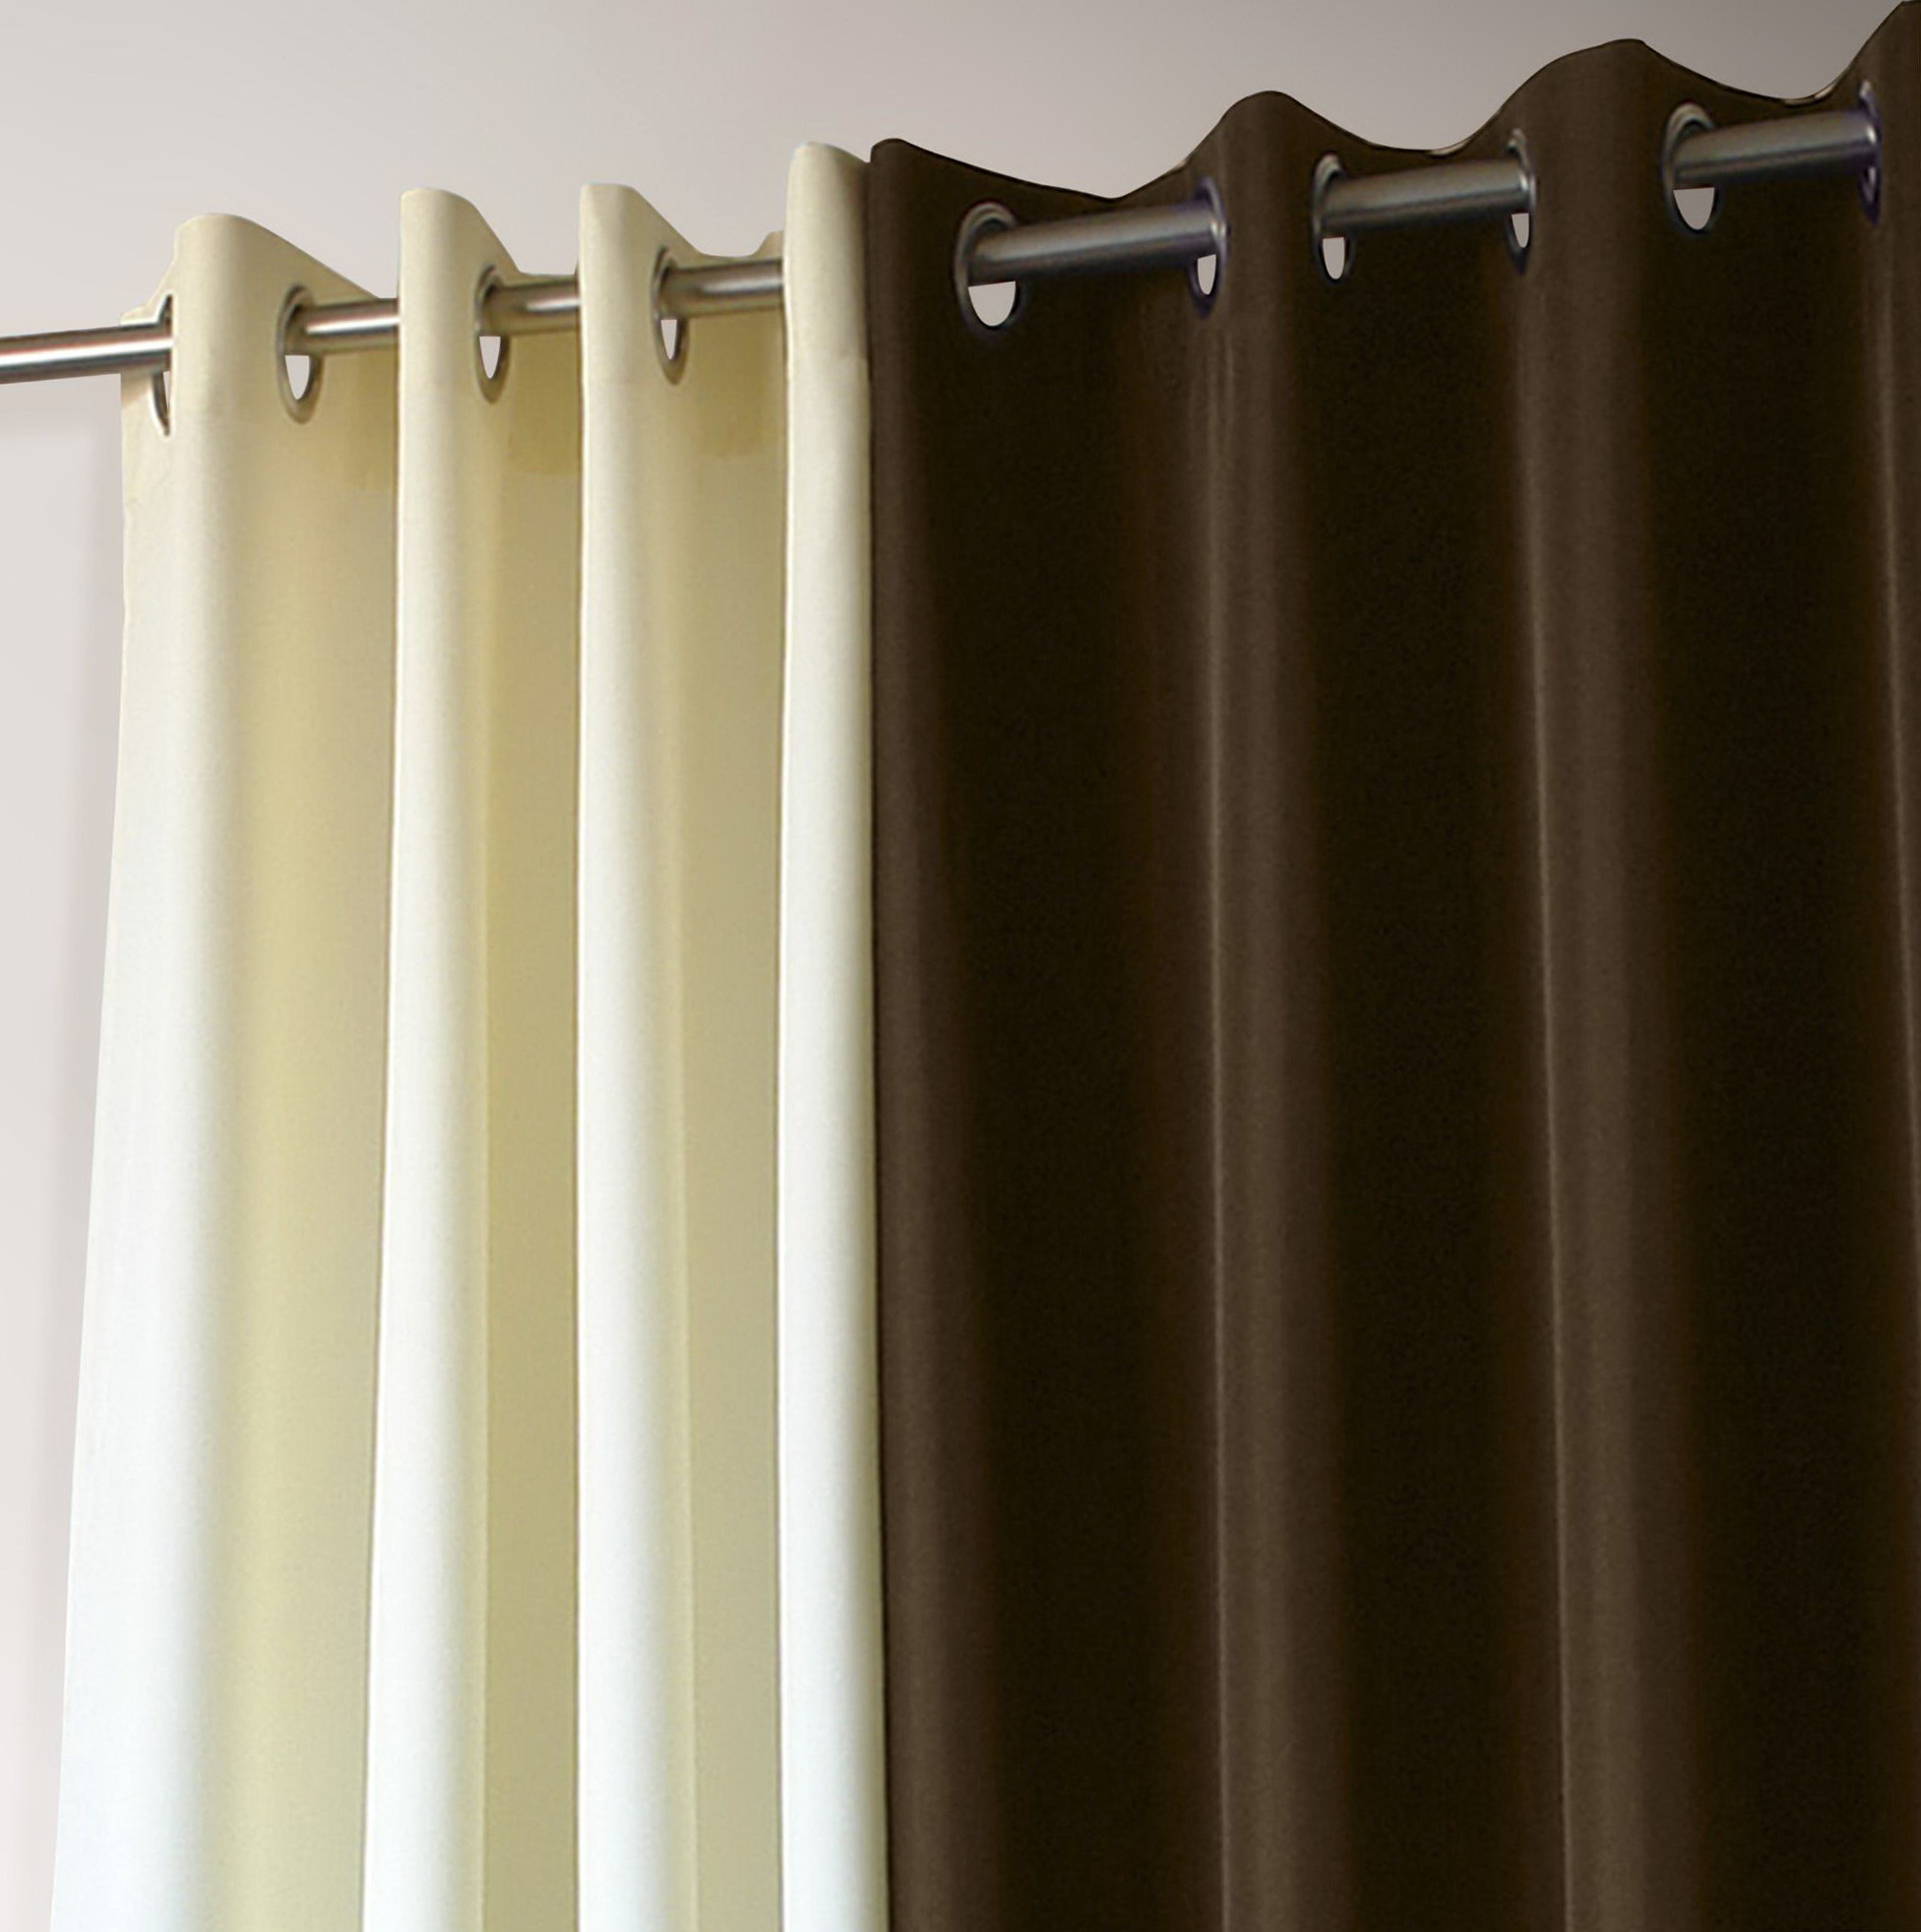 Best Curtain Rods For Grommet Panels Home Design Ideas